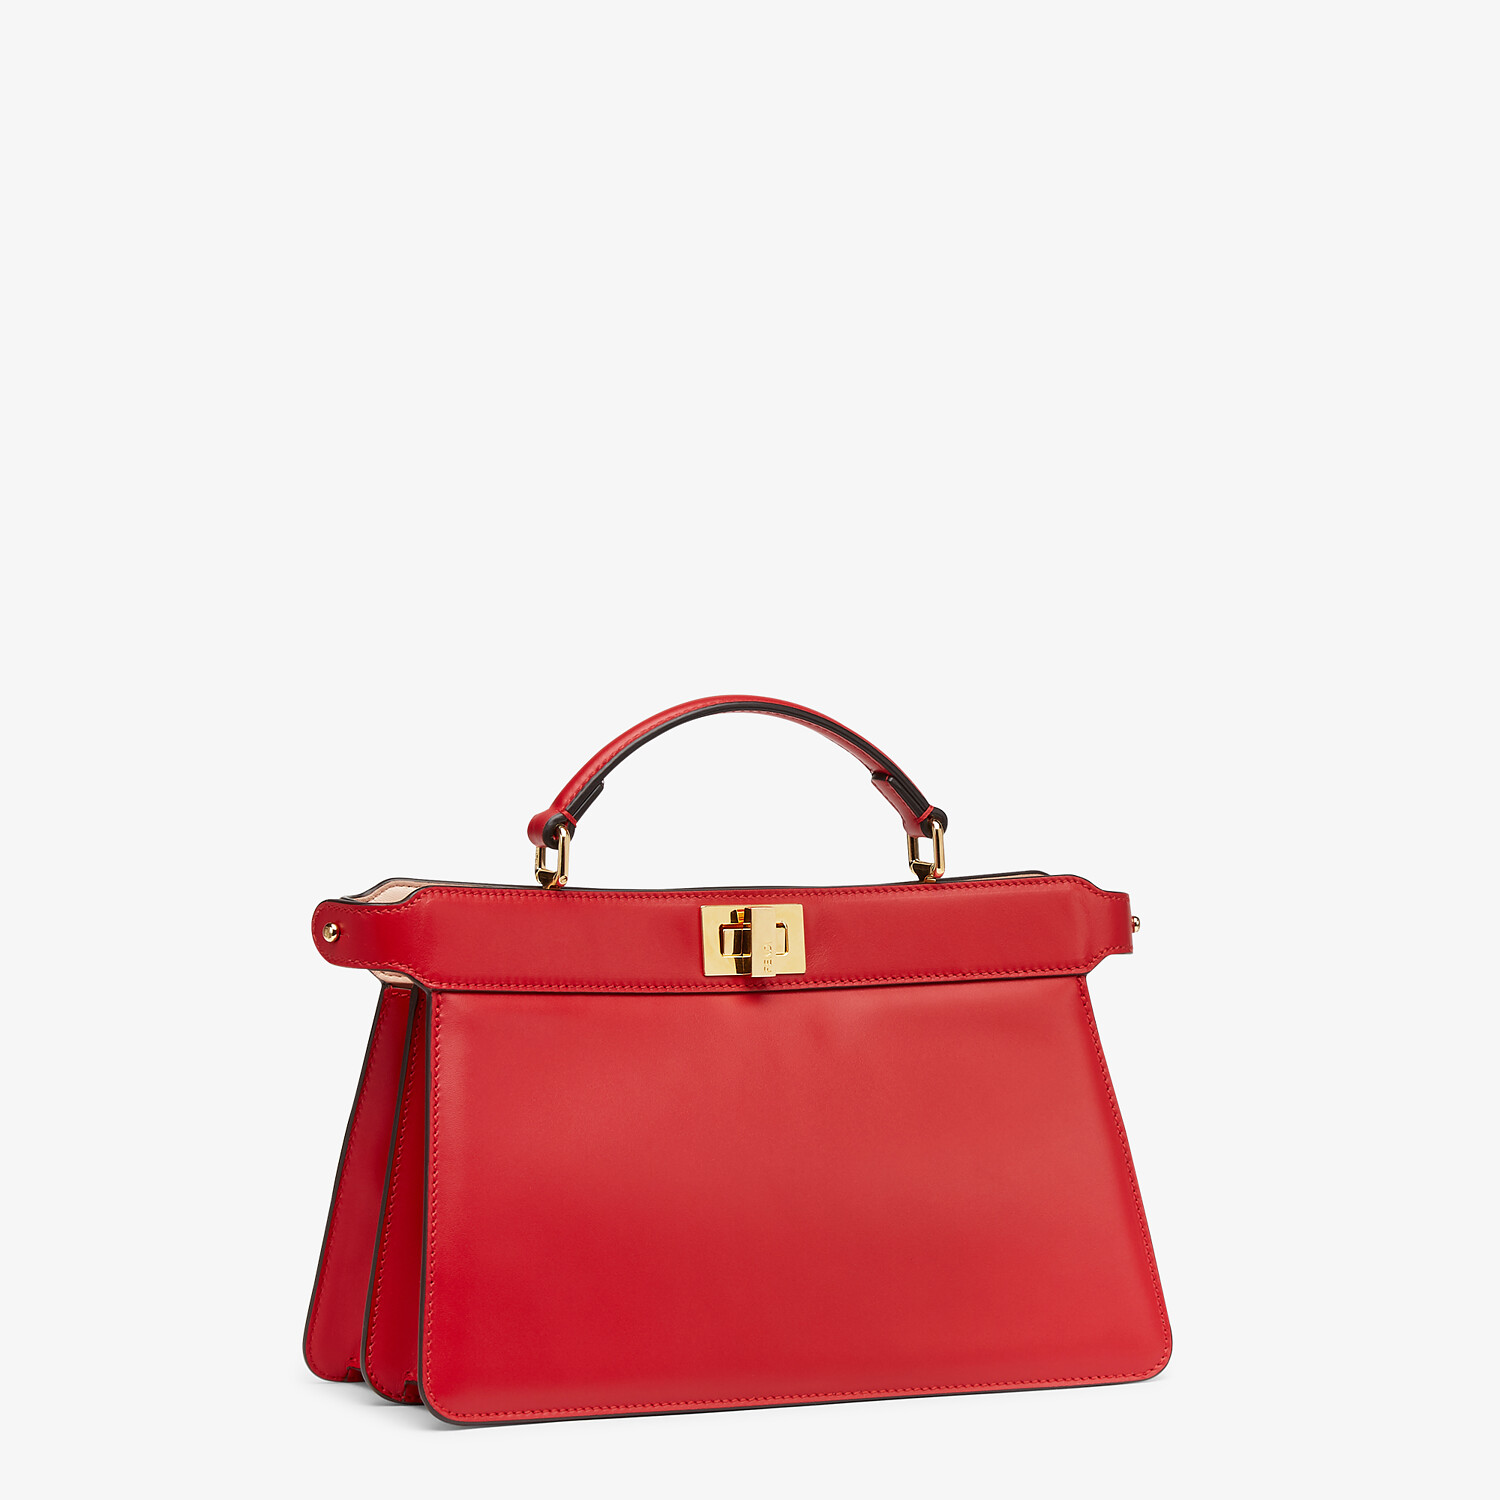 FENDI PEEKABOO ISEEU EAST-WEST - Red leather bag - view 3 detail